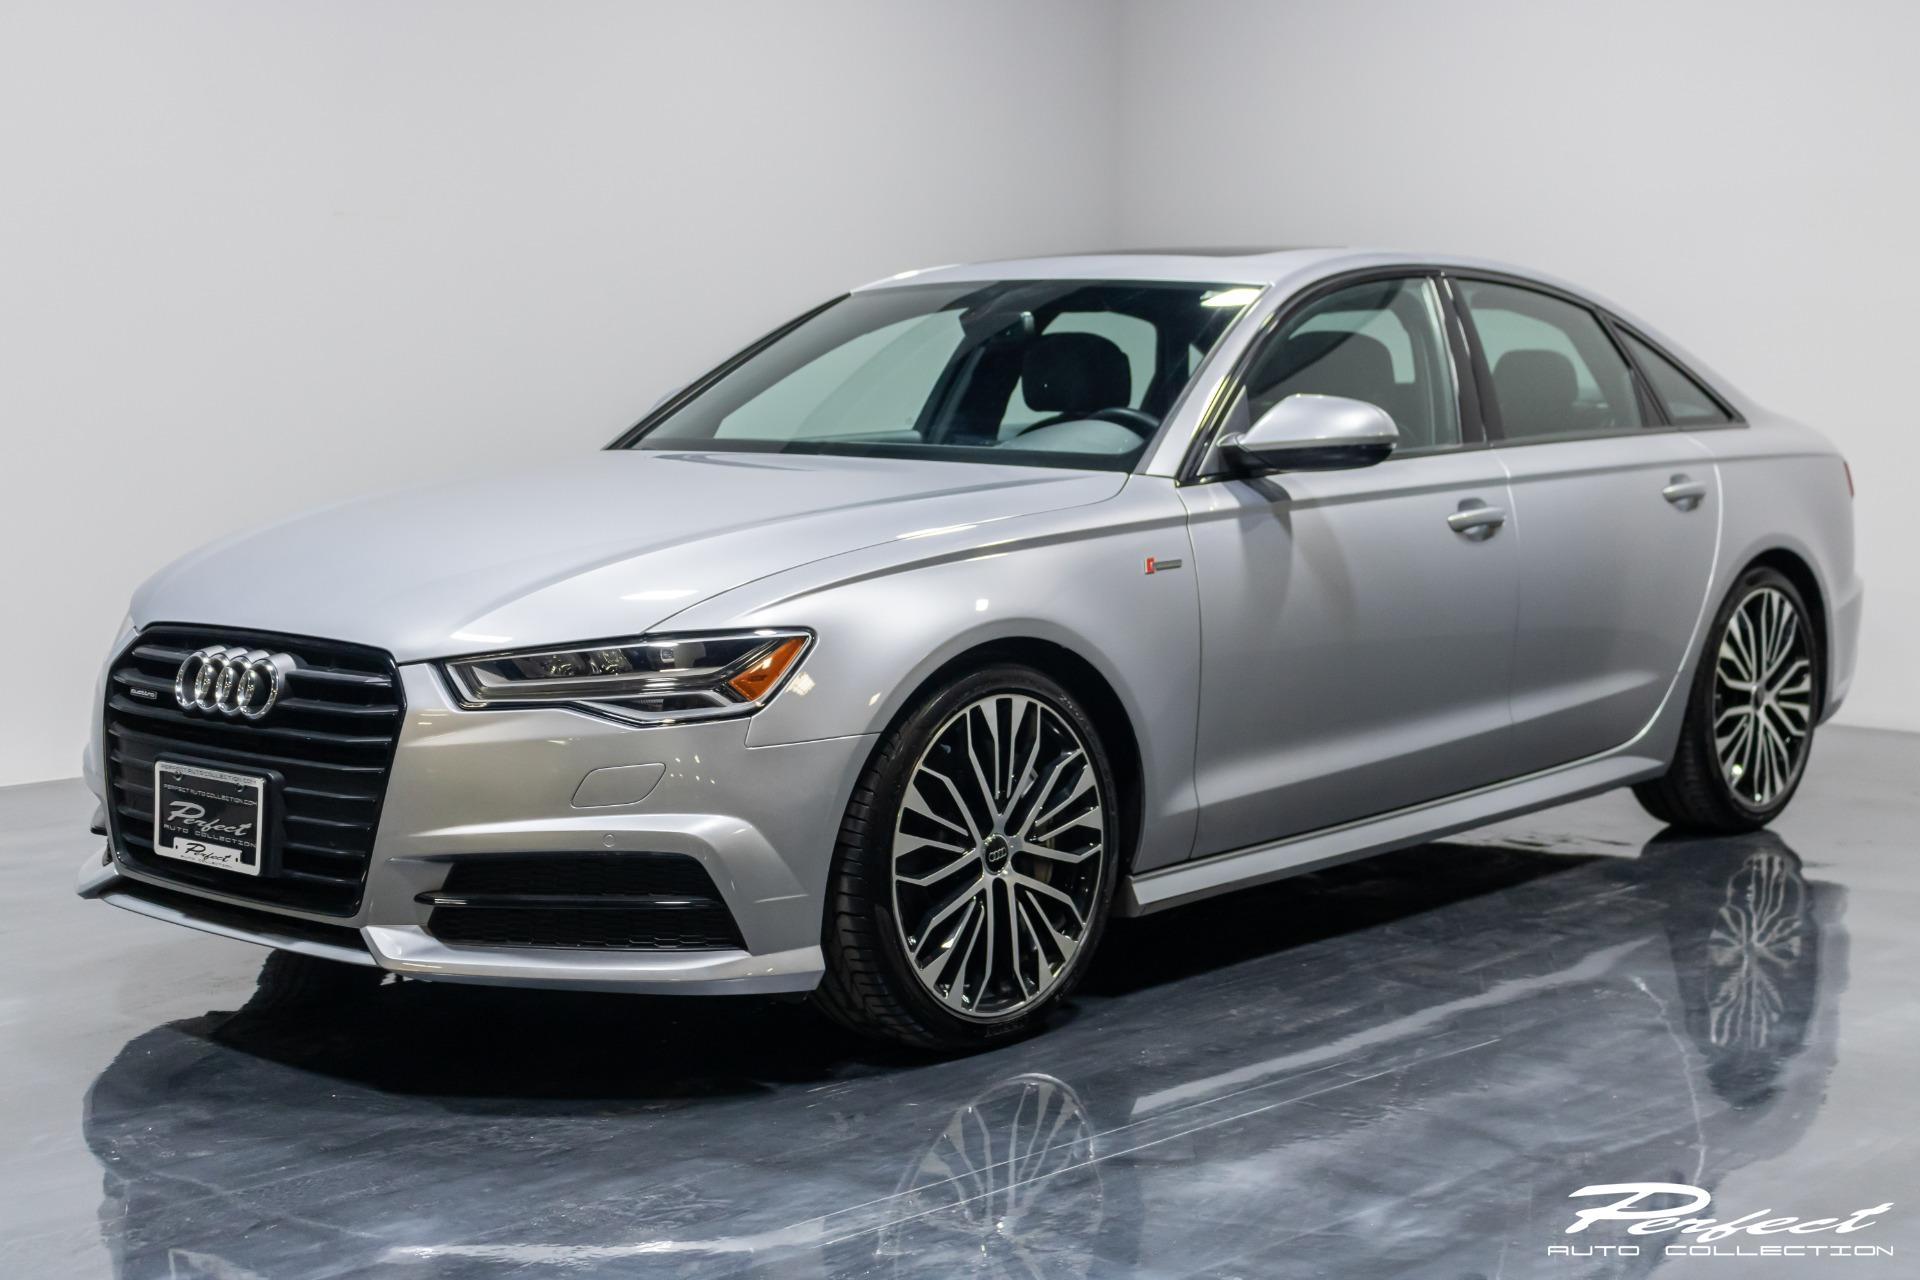 Used 2017 Audi A6 3.0T quattro Premium Plus for sale Sold at Perfect Auto Collection in Akron OH 44310 1